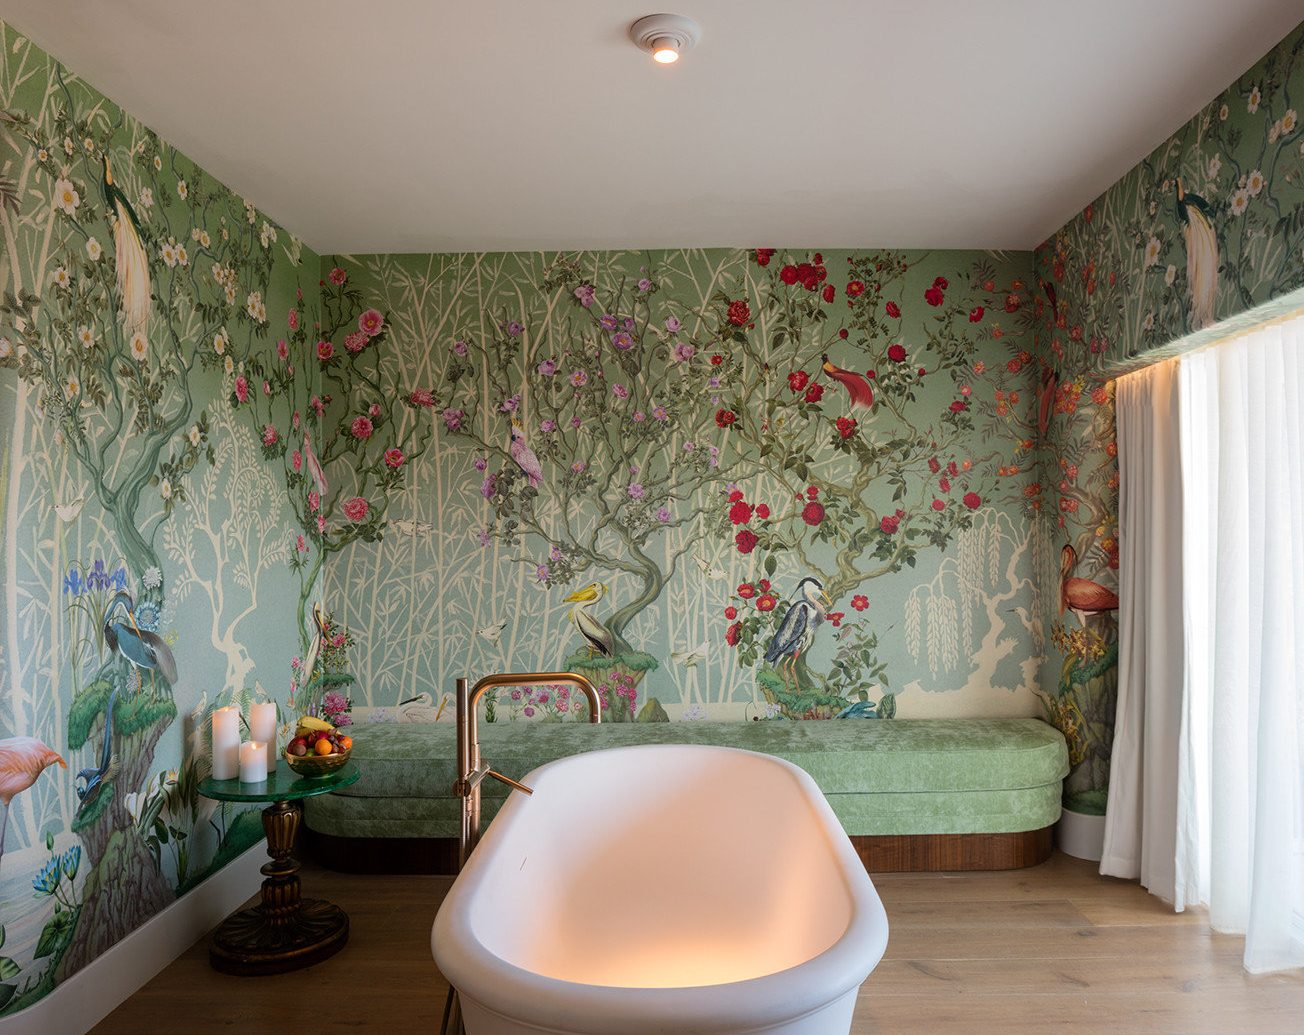 Bath colorful floral Health + Wellness Hotels Luxury private relaxation Romance Spa Spa Retreats Style + Design treatment wallpaper wall indoor floor room bathroom property house interior design bathtub flooring Design estate Suite living room plumbing fixture furniture